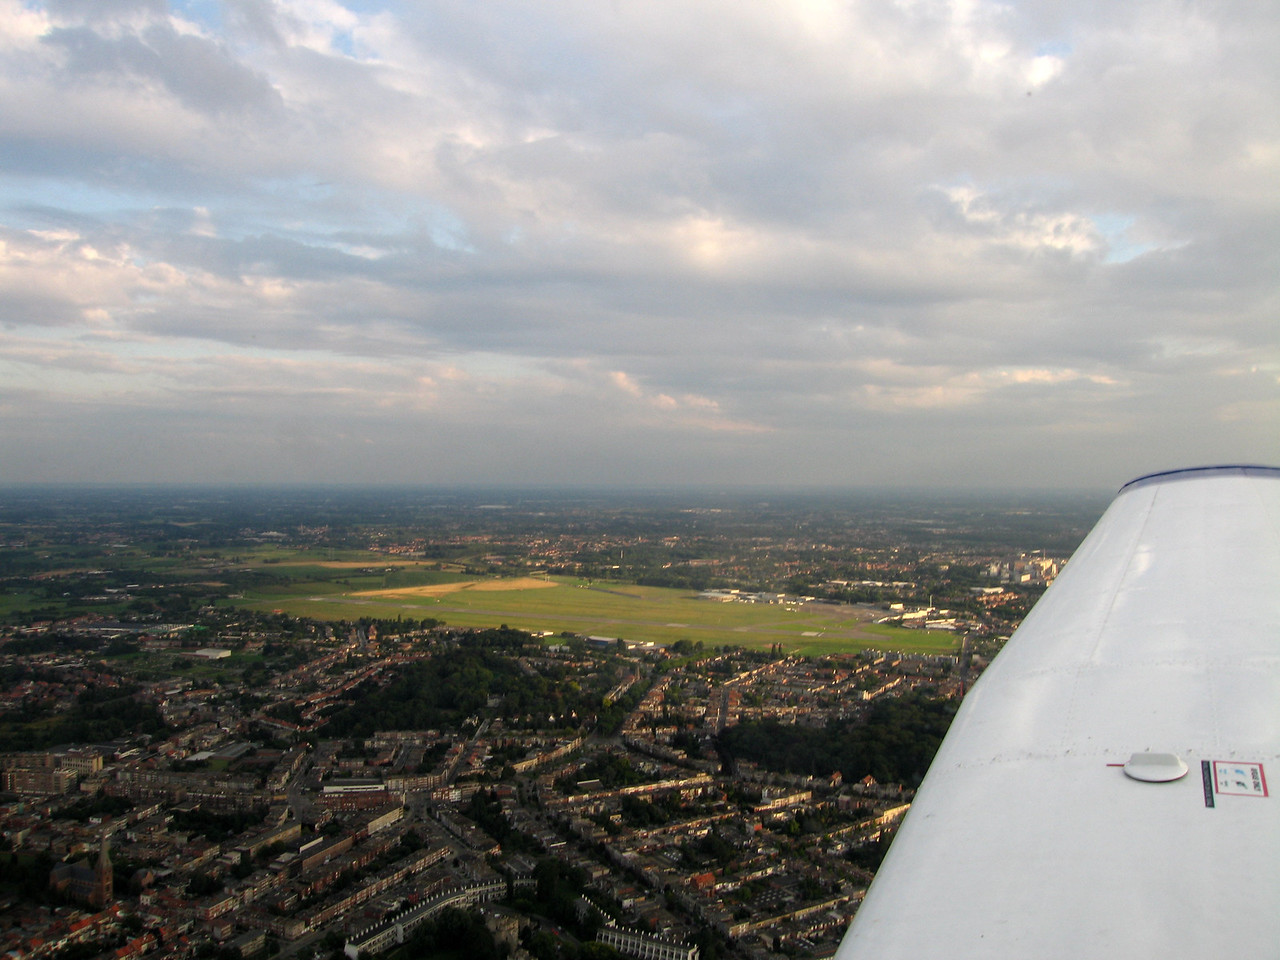 Bit blurred, but excellent view on the airport. Here flying on downwind for runway 29 at 1000 feet.